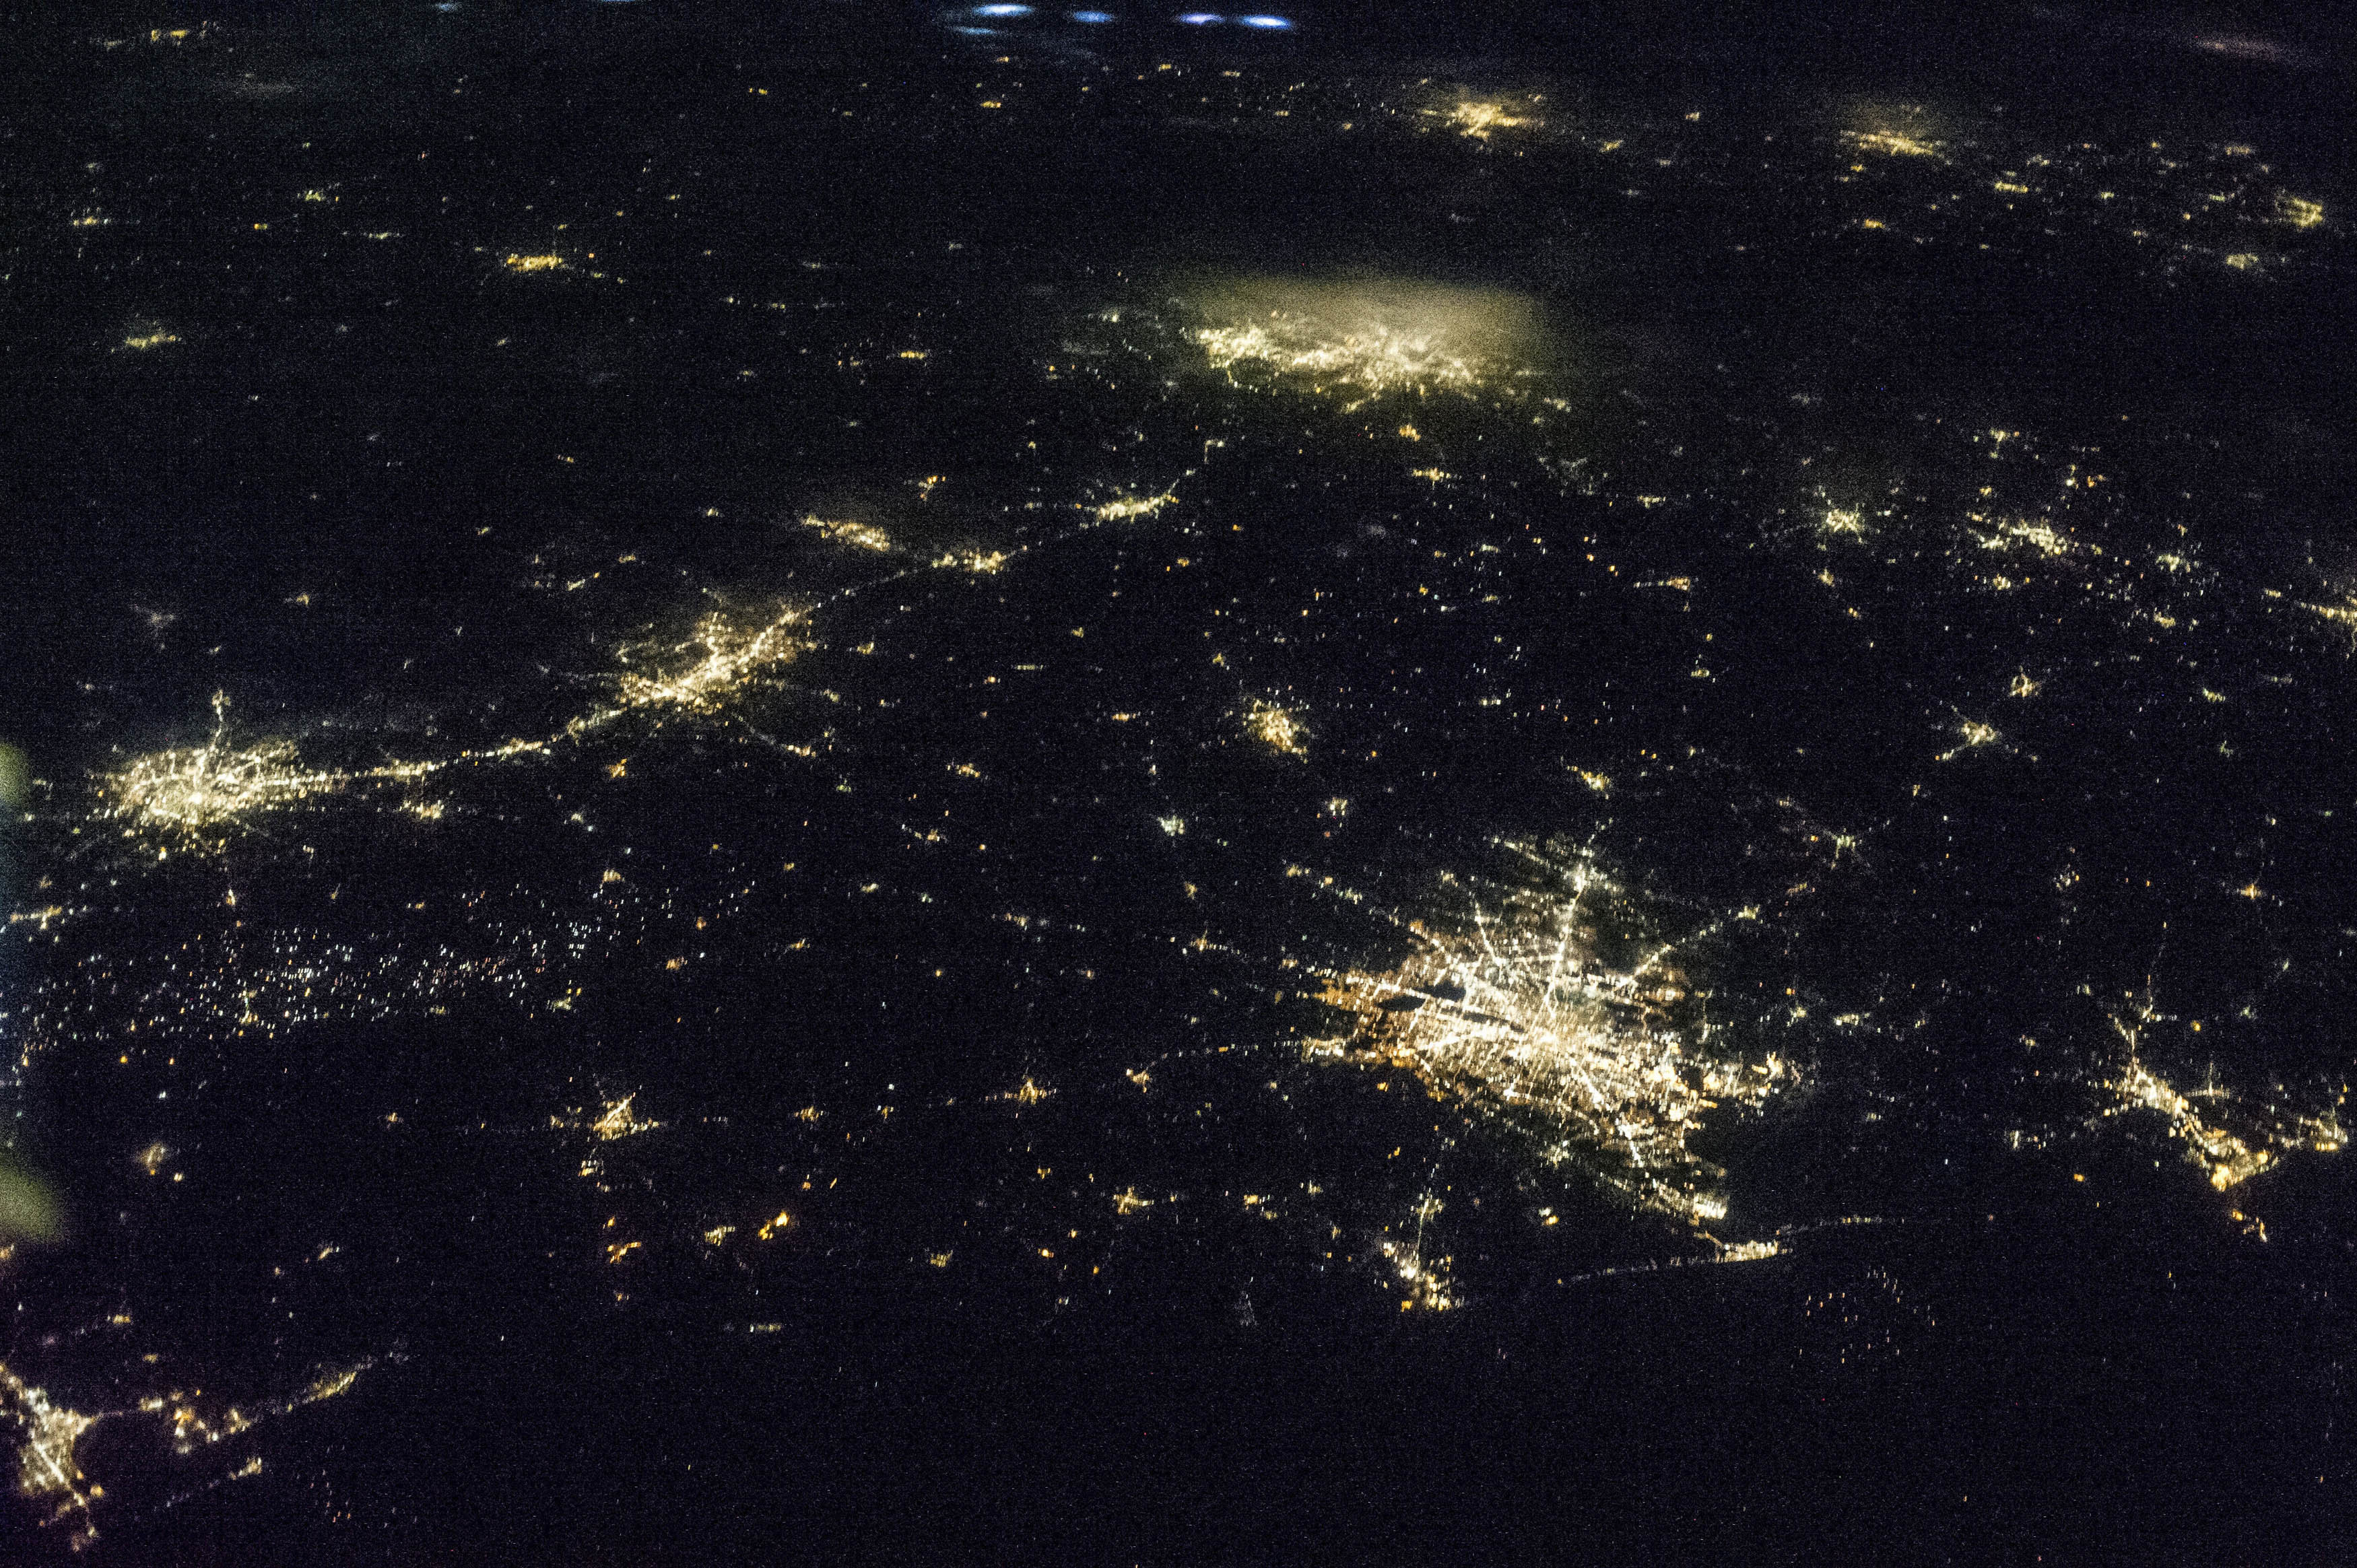 The state of Texas is captured by one of the NASA Expedition 36 crew members aboard the International Space Station, some 240 miles above Earth, used a 50mm lens in this image released on June 27, 2013. The largest metro area, Dallas-Fort Worth, often referred to informally as the Metroplex, is the heavily cloud-covered area at the top center of the photo. Neighboring Oklahoma, on the north side of the Red River, less than 100 miles to the north of the Metroplex, appears to be experiencing thunderstorms. The Houston metropolitan area, including the coastal city of Galveston, is at lower right. To the east near the Texas border with Louisiana, the metropolitan area of Beaumont-Port Arthur appears as a smaller blotch of light, also hugging the coast of the Texas Gulf. Moving inland to the left side of the picture one can delineate the San Antonio metro area. The capital city of Austin can be seen to the northeast of San Antonio.  REUTERS/NASA/Handout via Reuters  (UNITED STATES - Tags: ENERGY SCIENCE TECHNOLOGY CITYSCAPE) ATTENTION EDITORS - FOR EDITORIAL USE ONLY. NOT FOR SALE FOR MARKETING OR ADVERTISING CAMPAIGNS. THIS IMAGE HAS BEEN SUPPLIED BY A THIRD PARTY. IT IS DISTRIBUTED, EXACTLY AS RECEIVED BY REUTERS, AS A SERVICE TO CLIENTS - GM1E96S01BI02